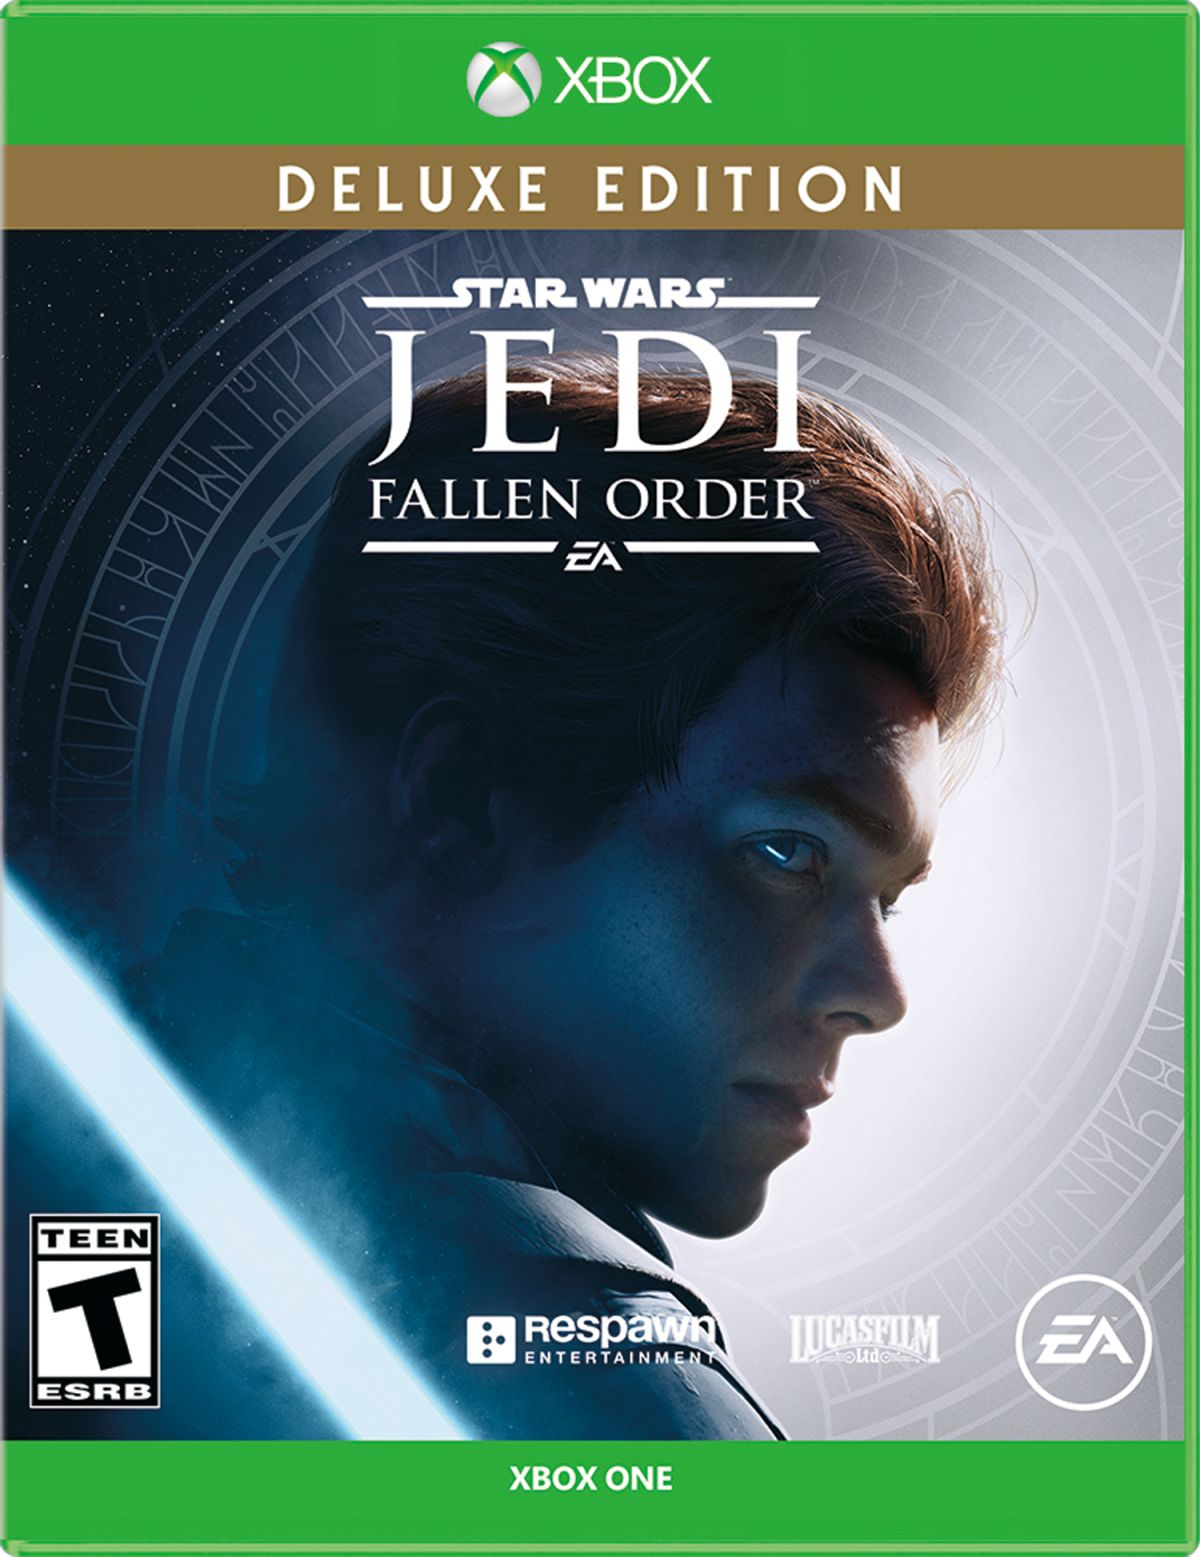 Star Wars Jedi Fallen Order For Ps4 And Xbox One Is 20 Off For Cyber Monday Space